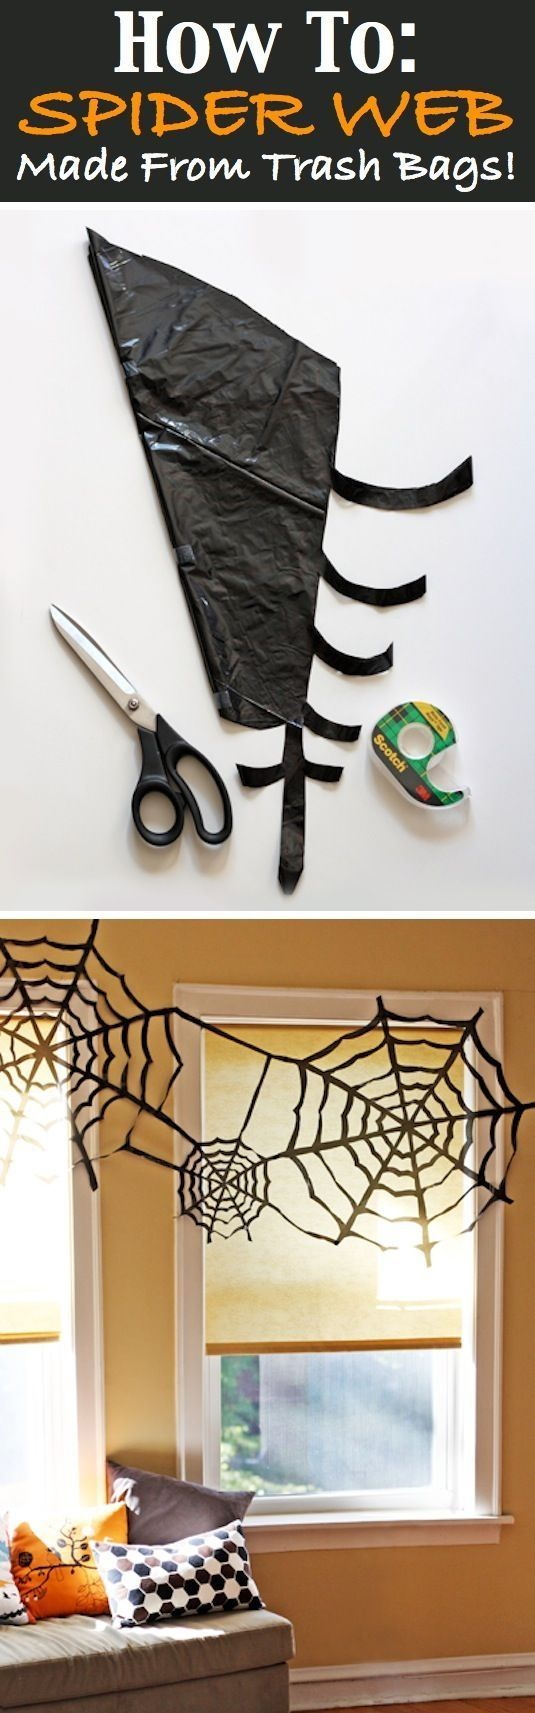 16 Easy But Awesome Homemade Halloween Decorations by echkbet #halloweendecorations